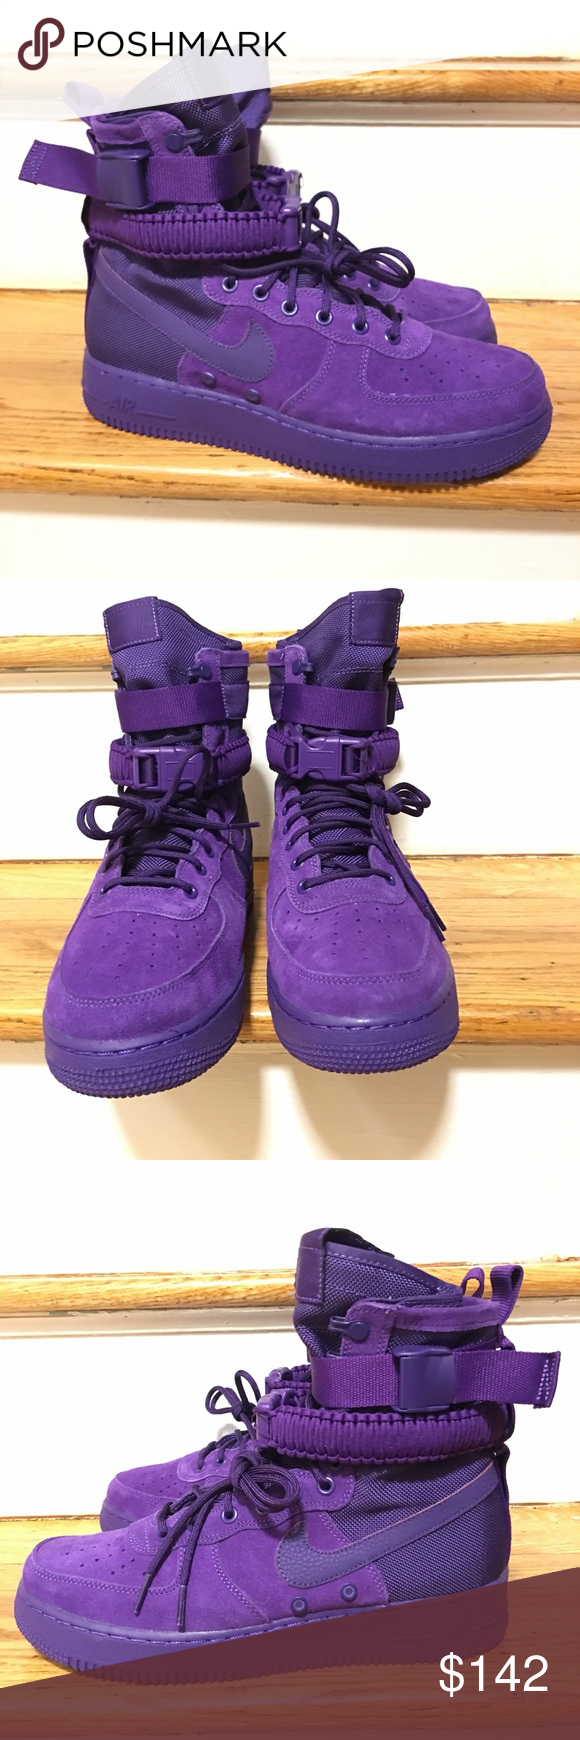 61969f170d36db Nike SF AF 1 Air Force 1 Court Suede Size 9.5 Nike SF AF 1 Air Force ...